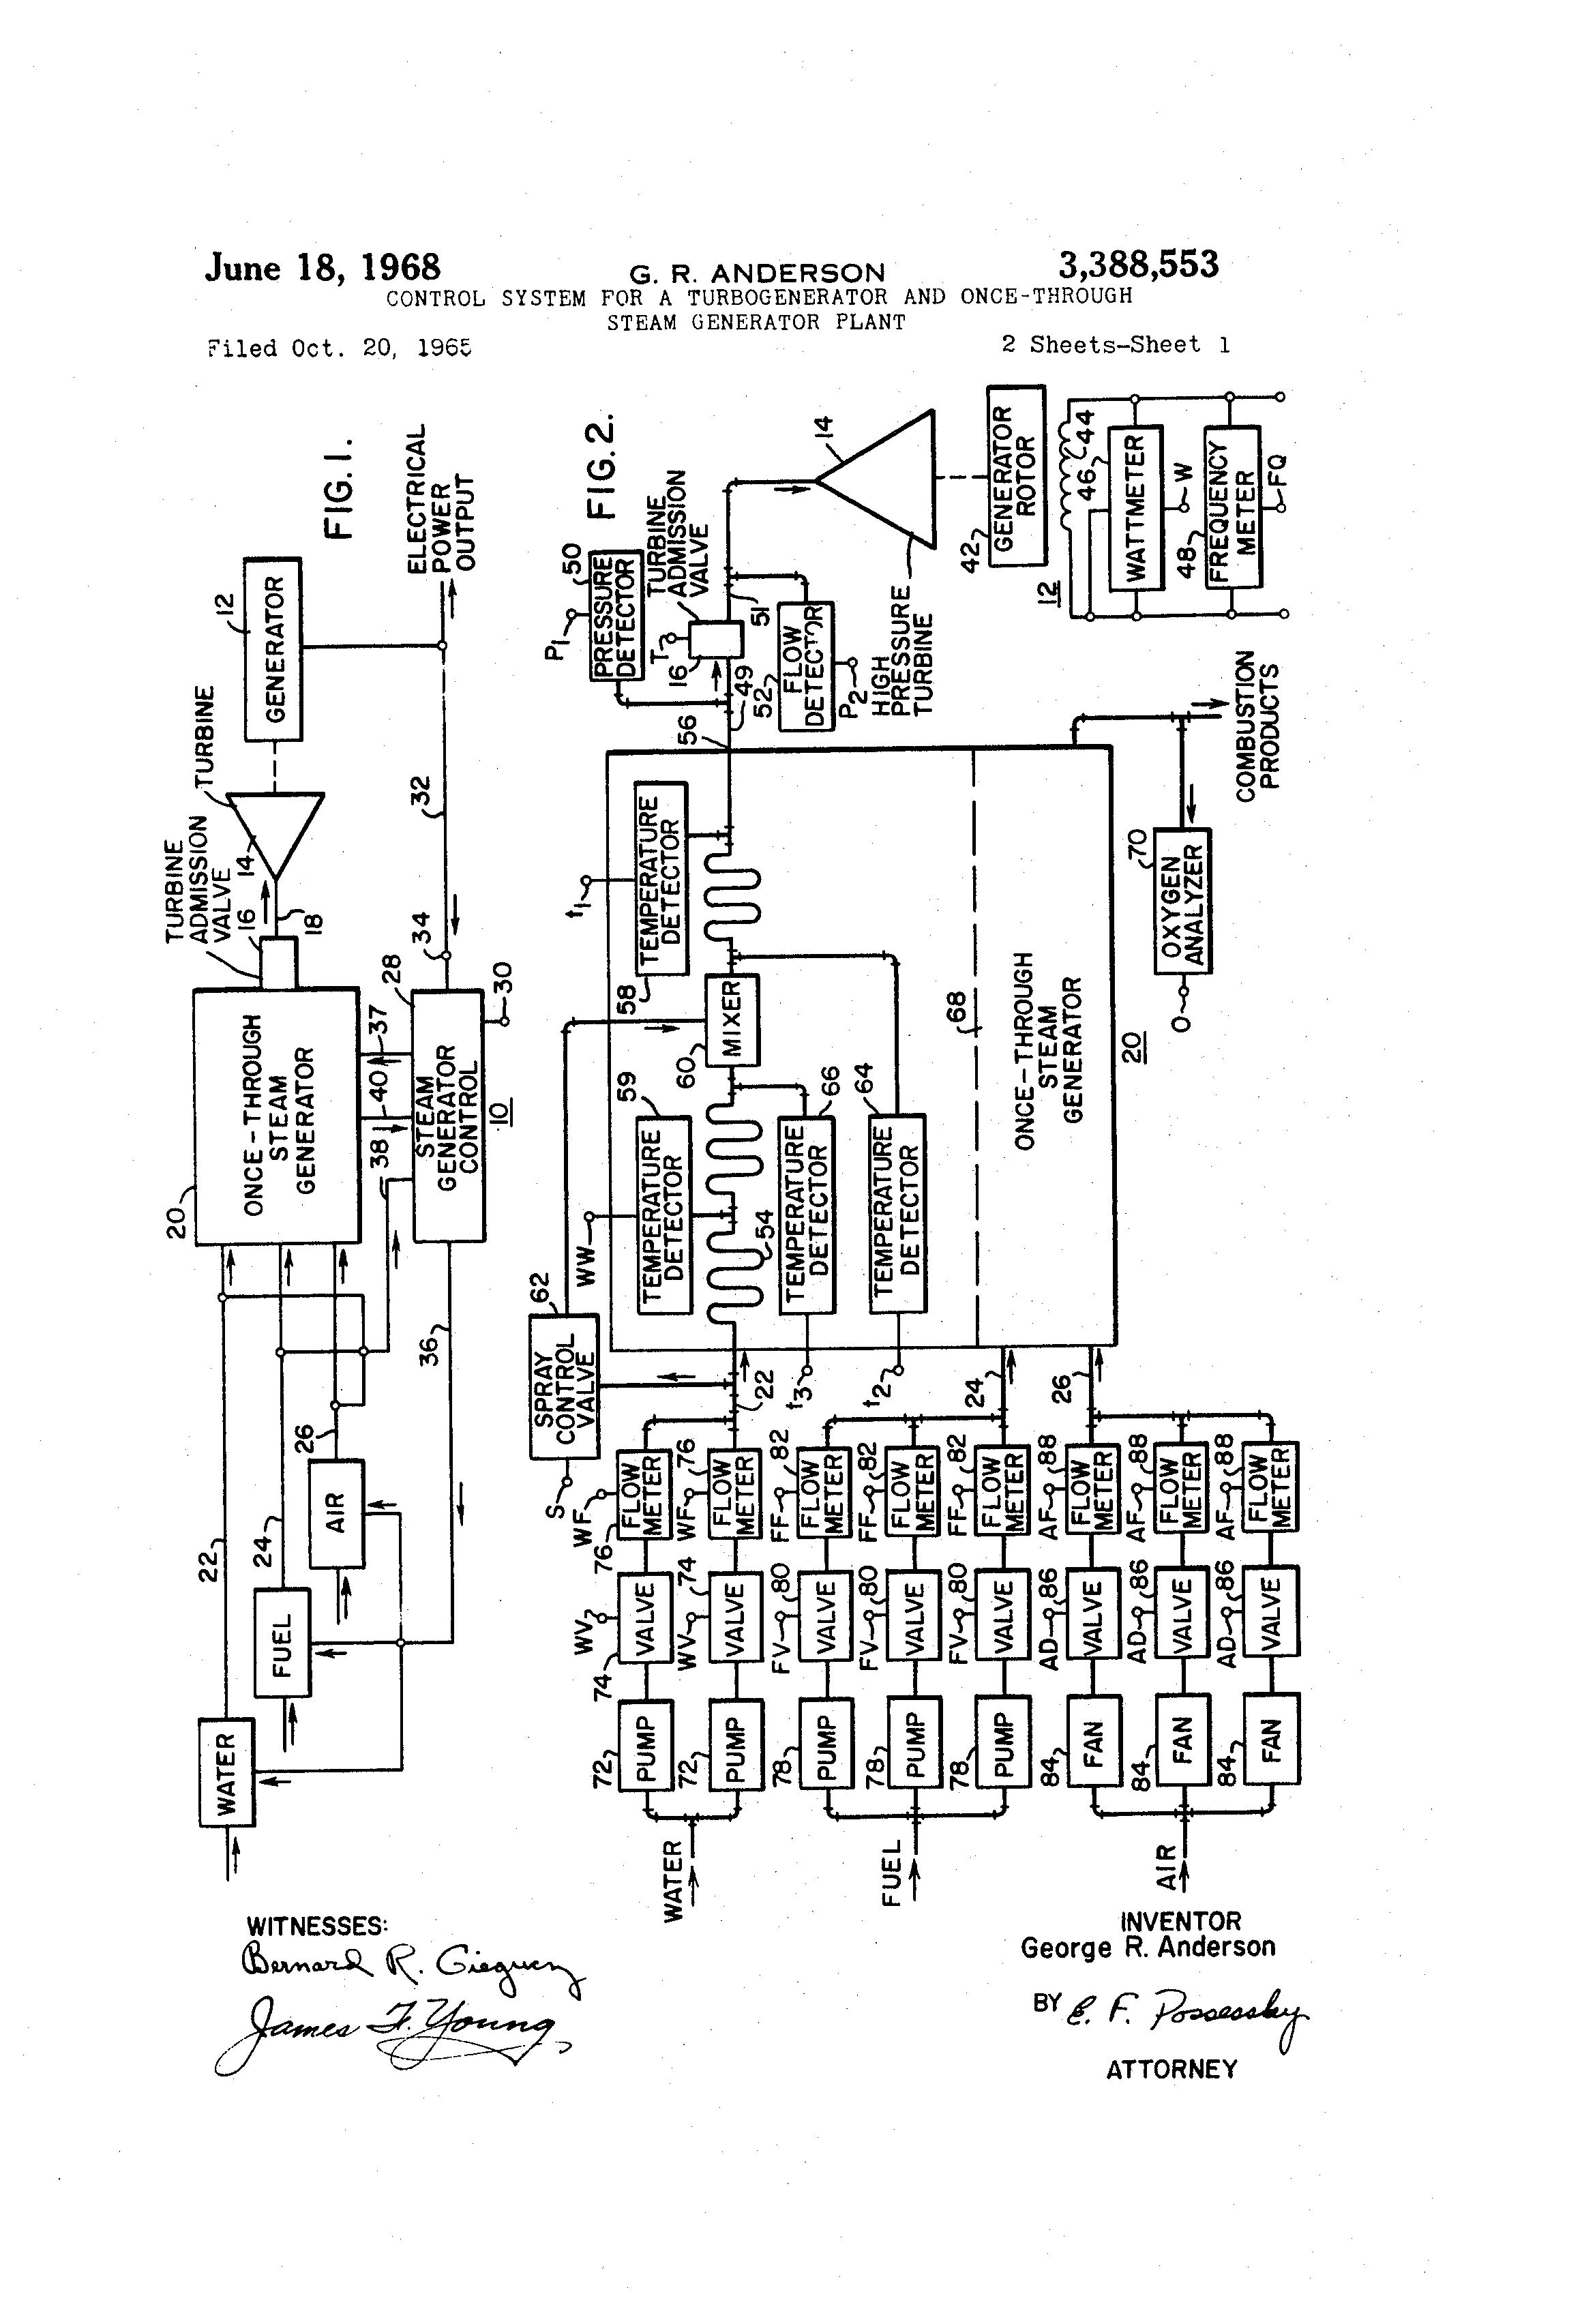 Patent US Control system for a turbogenerator and once